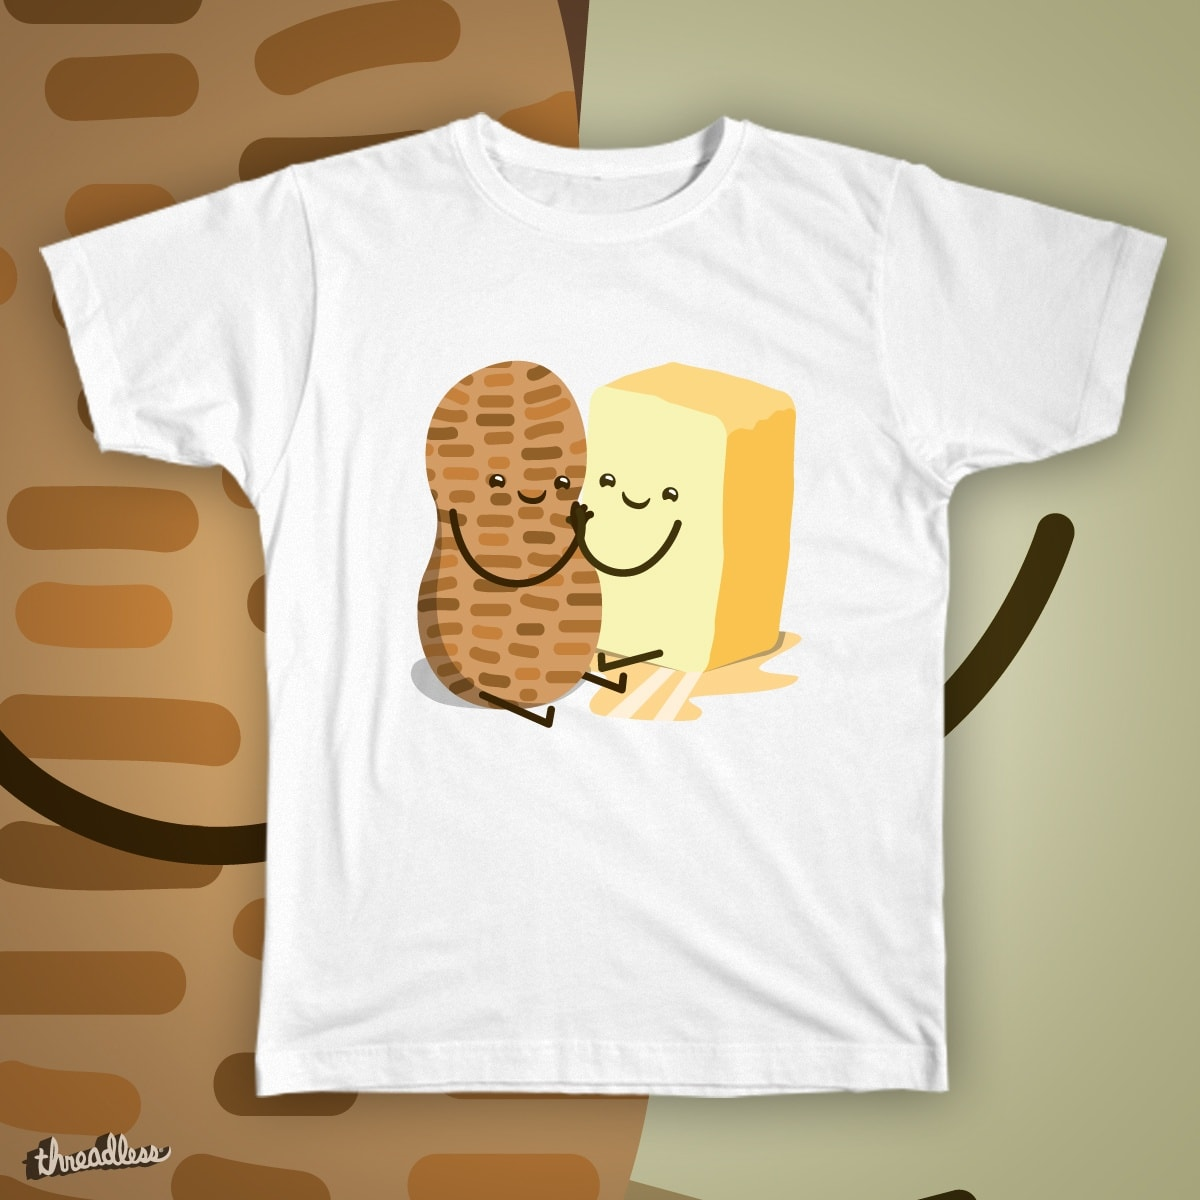 Peanut Butter by macarius.eng on Threadless